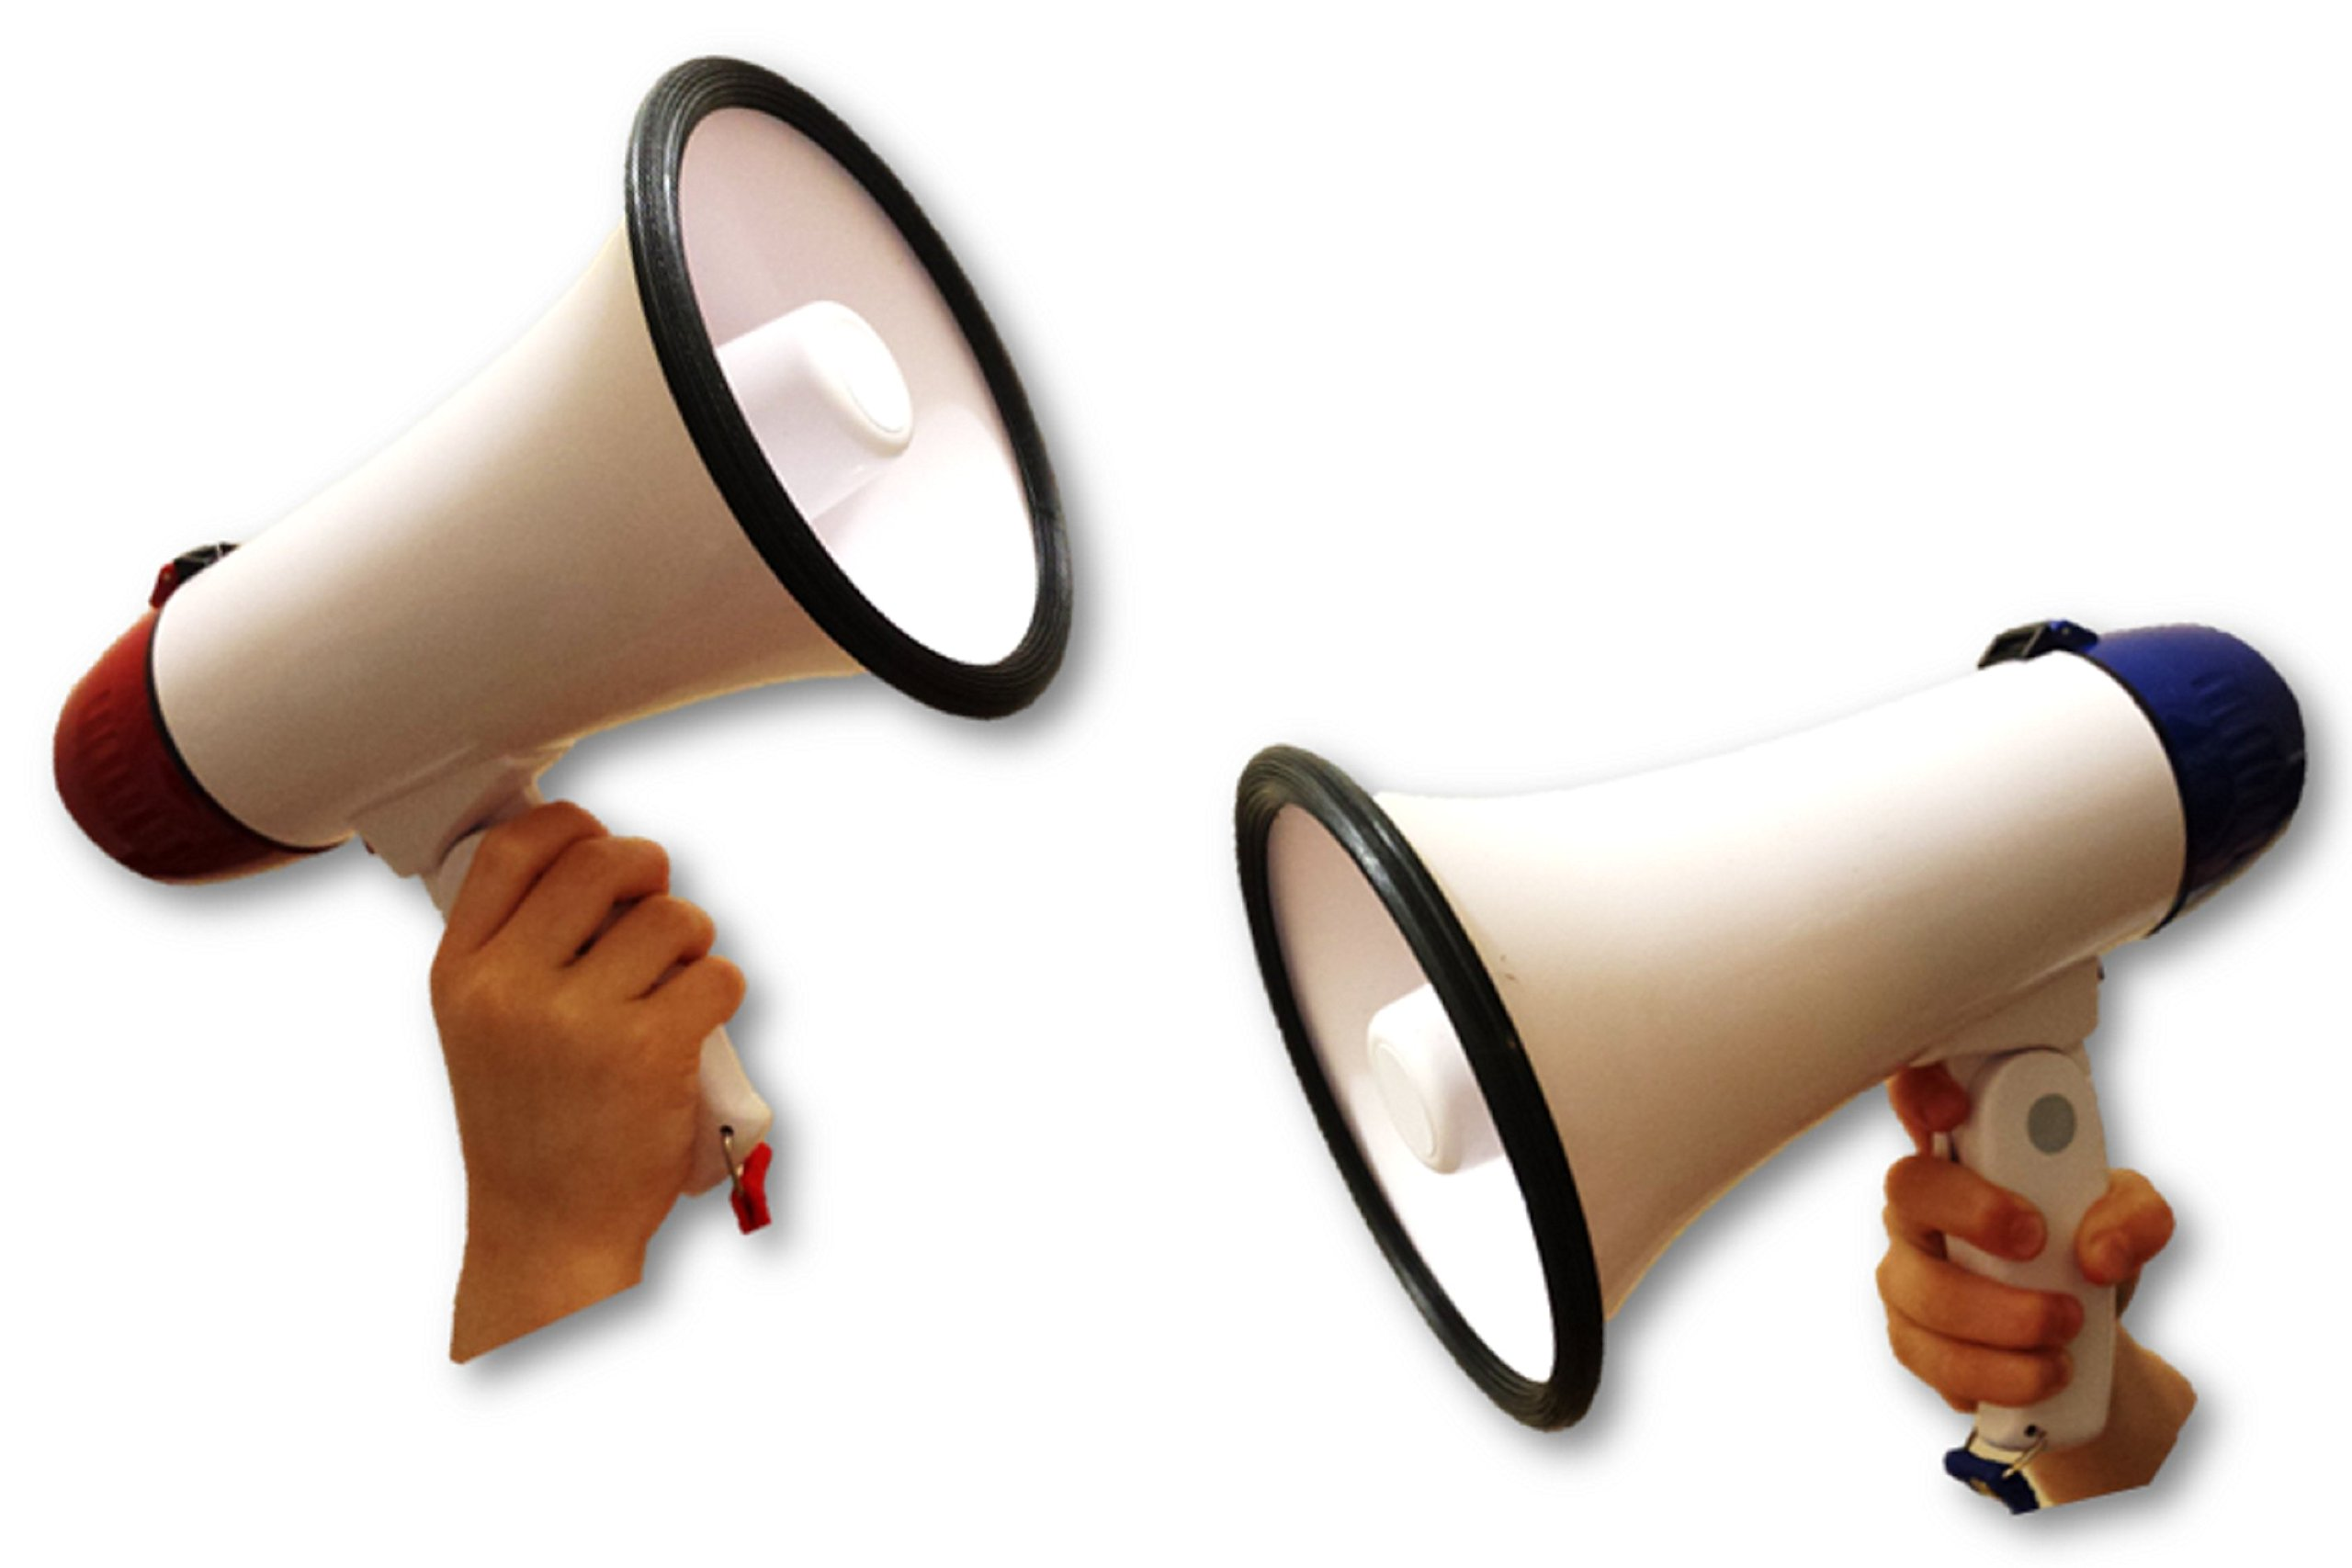 Playo Megaphone Speaker with Built-in Siren - Megaphone Bullhorn Great for Sports Cheerleading,Cheerleading Fans and Coaches or for Safety Drills (Assorted Colors)